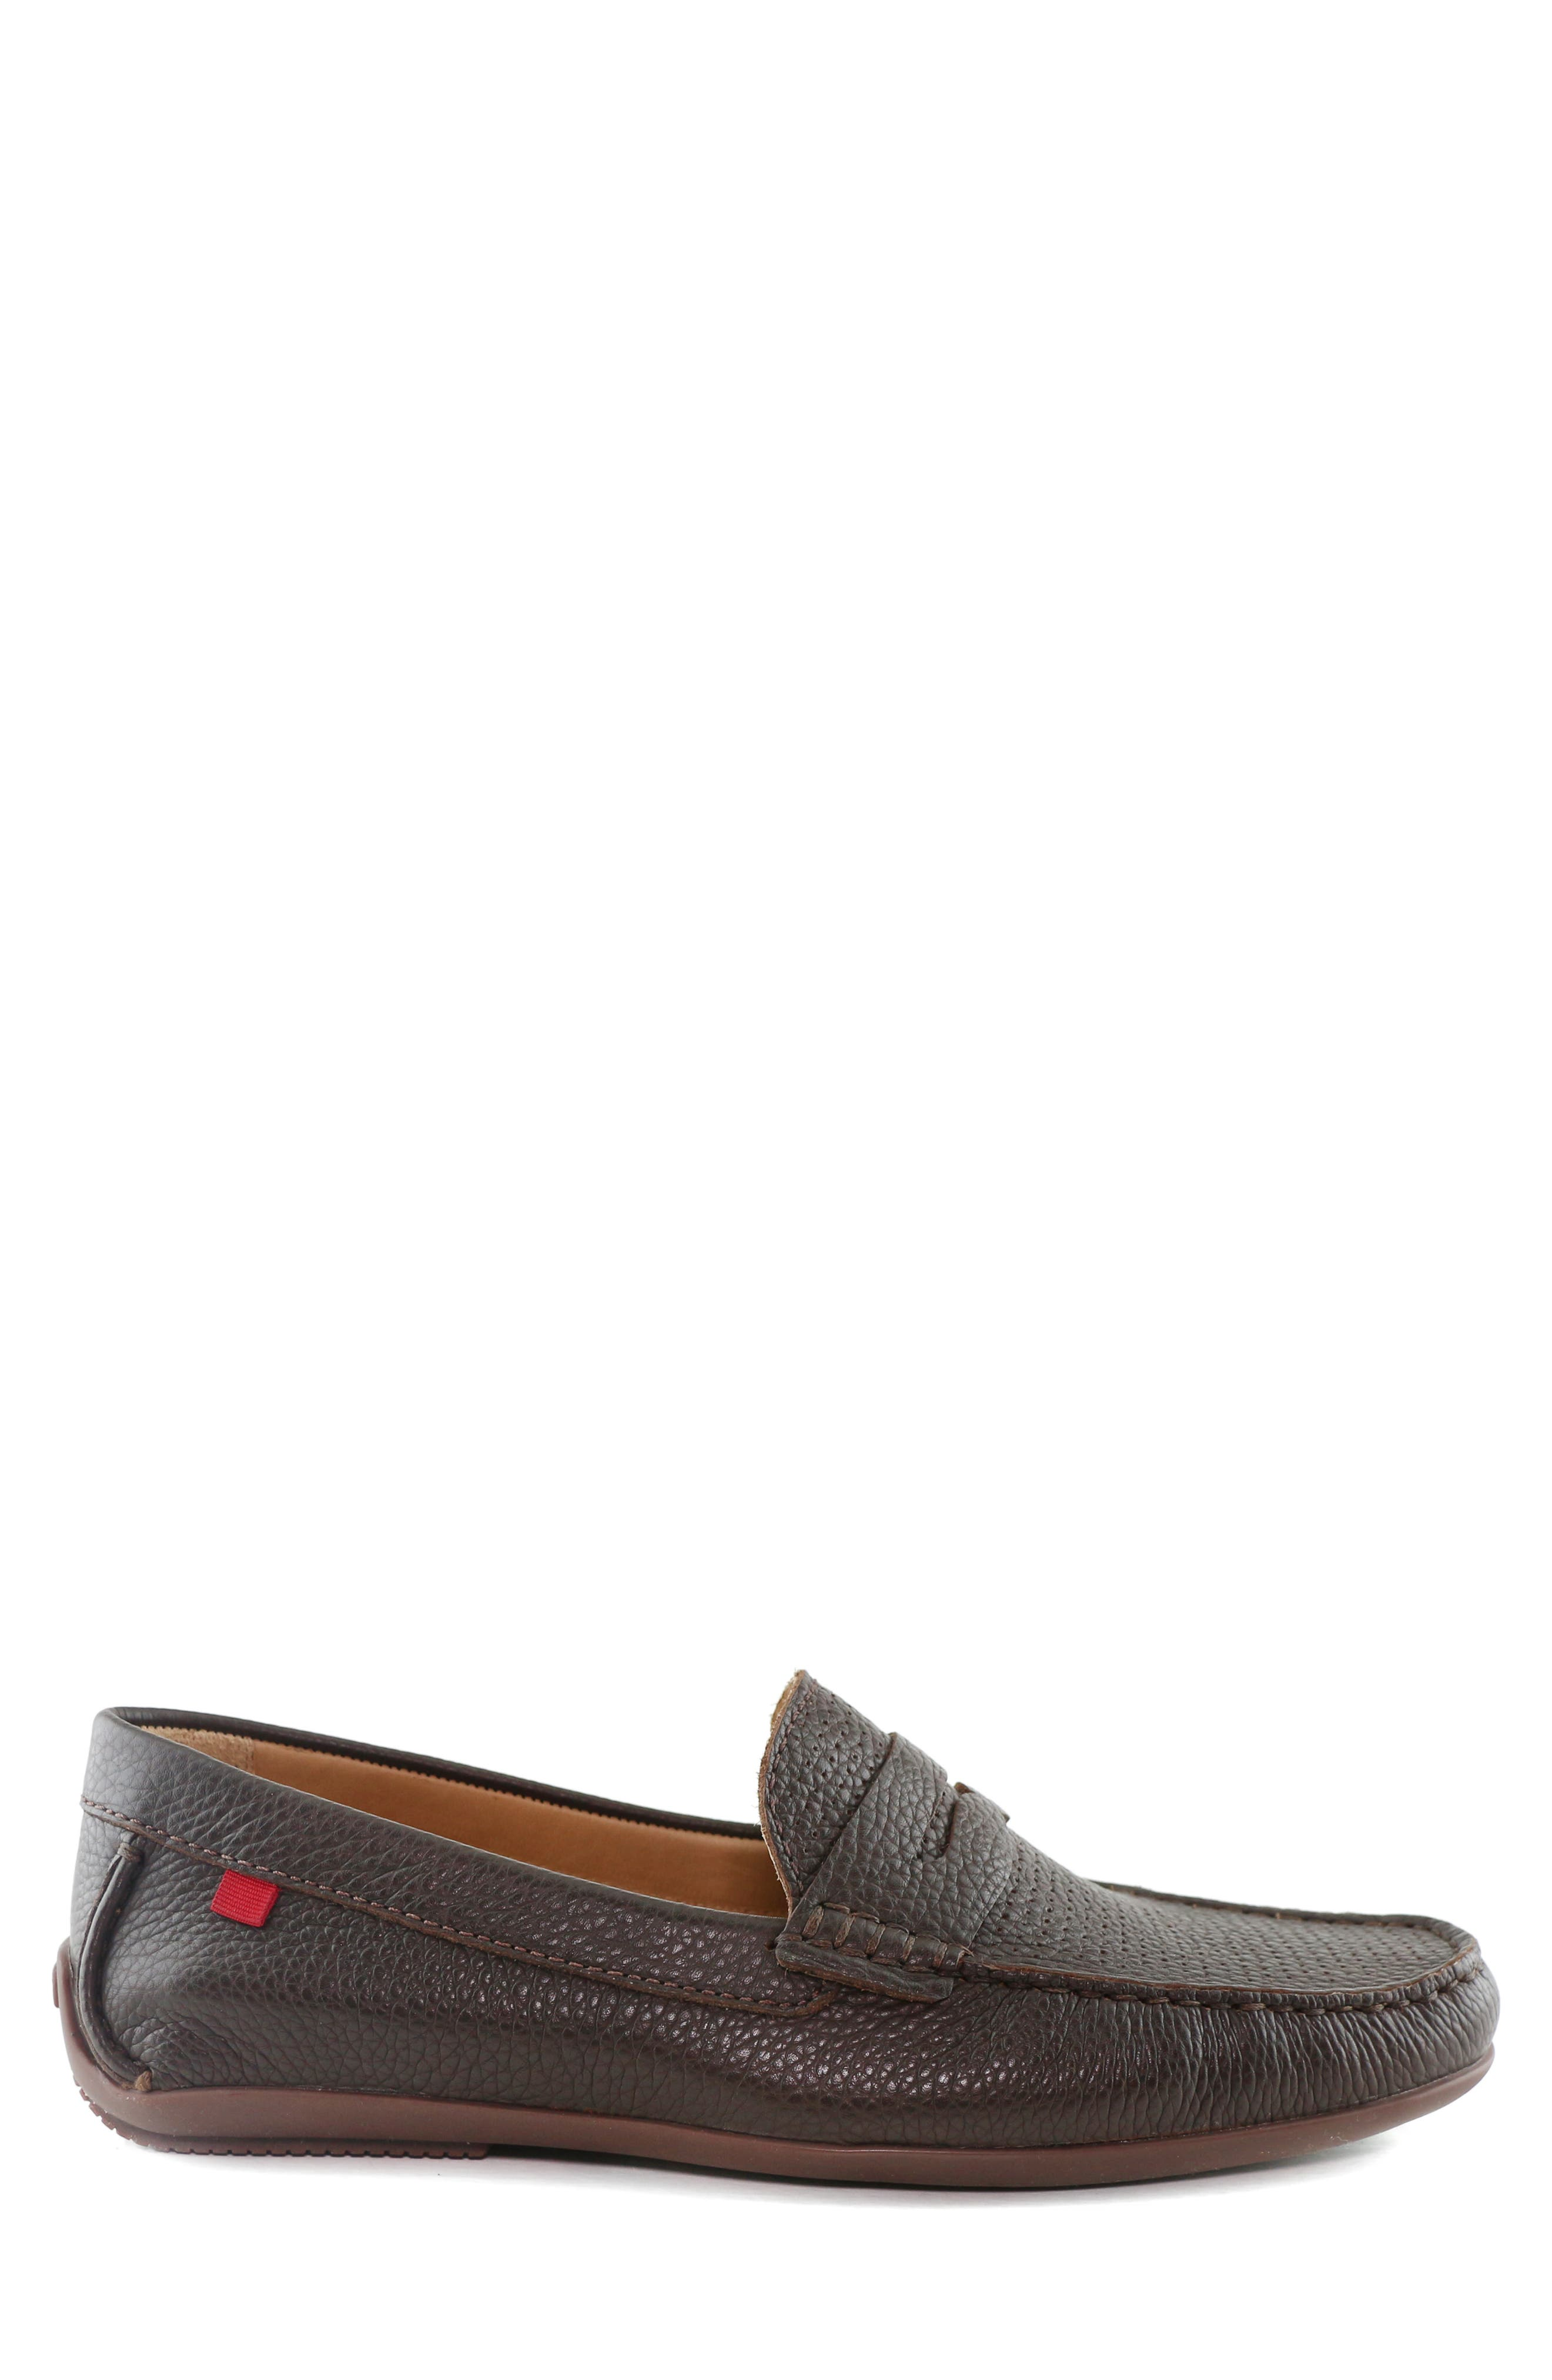 MARC JOSEPH NEW YORK, 'Union Street' Penny Loafer, Alternate thumbnail 3, color, BROWN GRAINY LEATHER